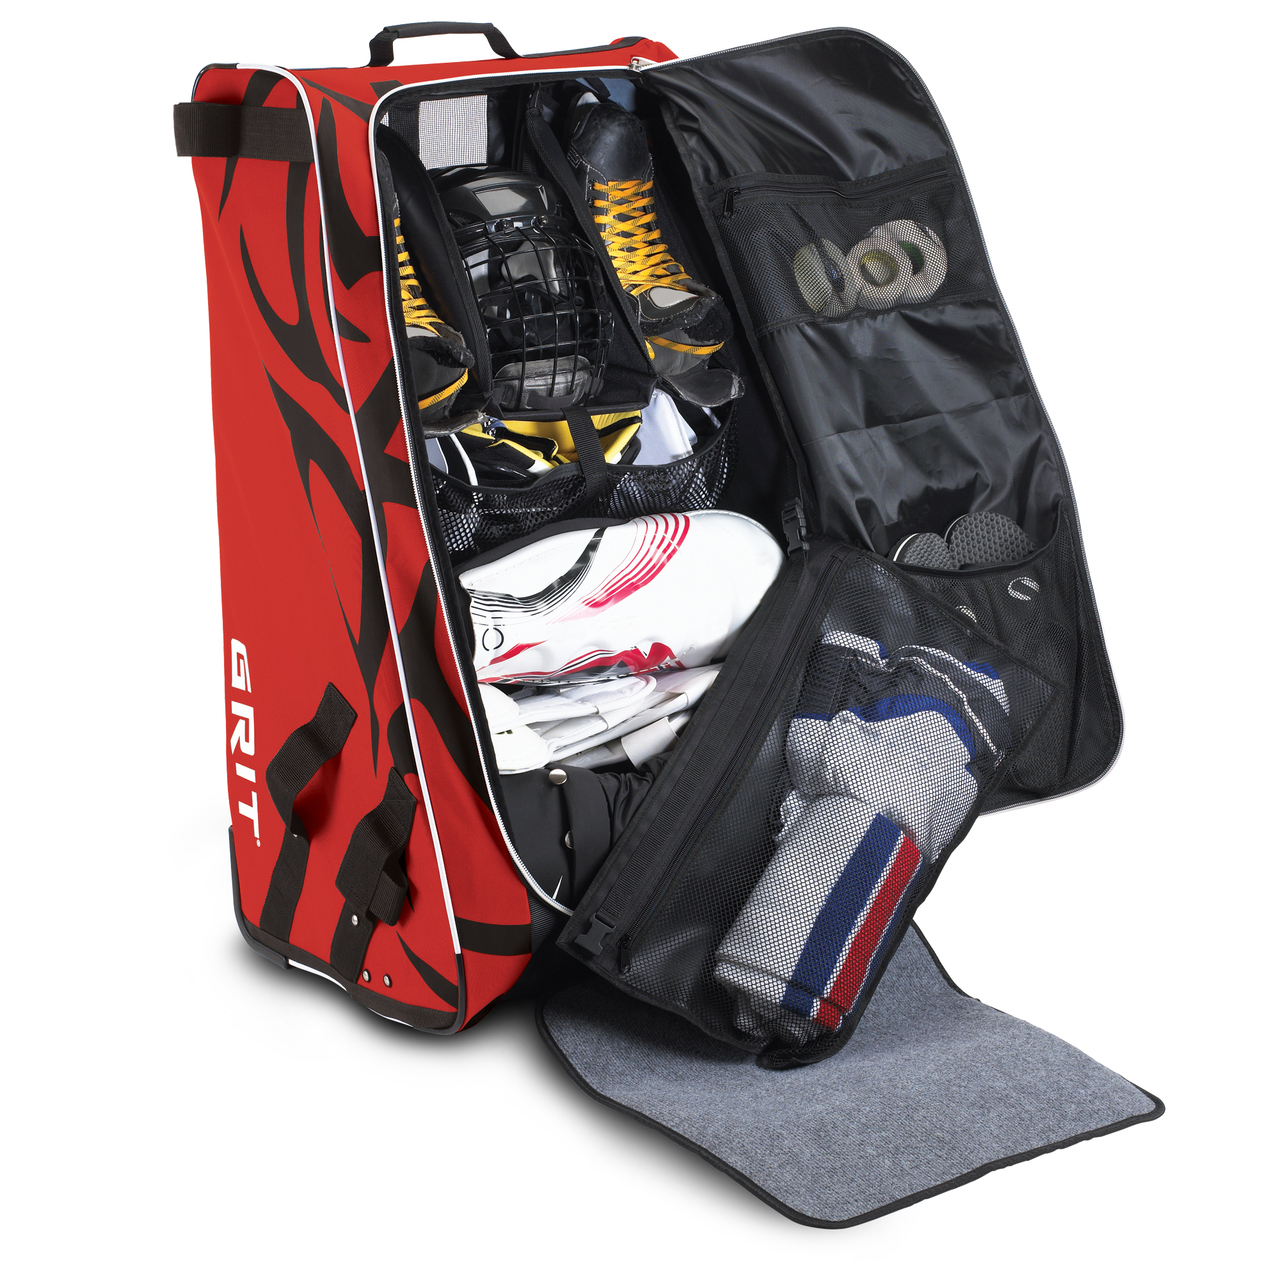 HTFX Hockey Tower Bag